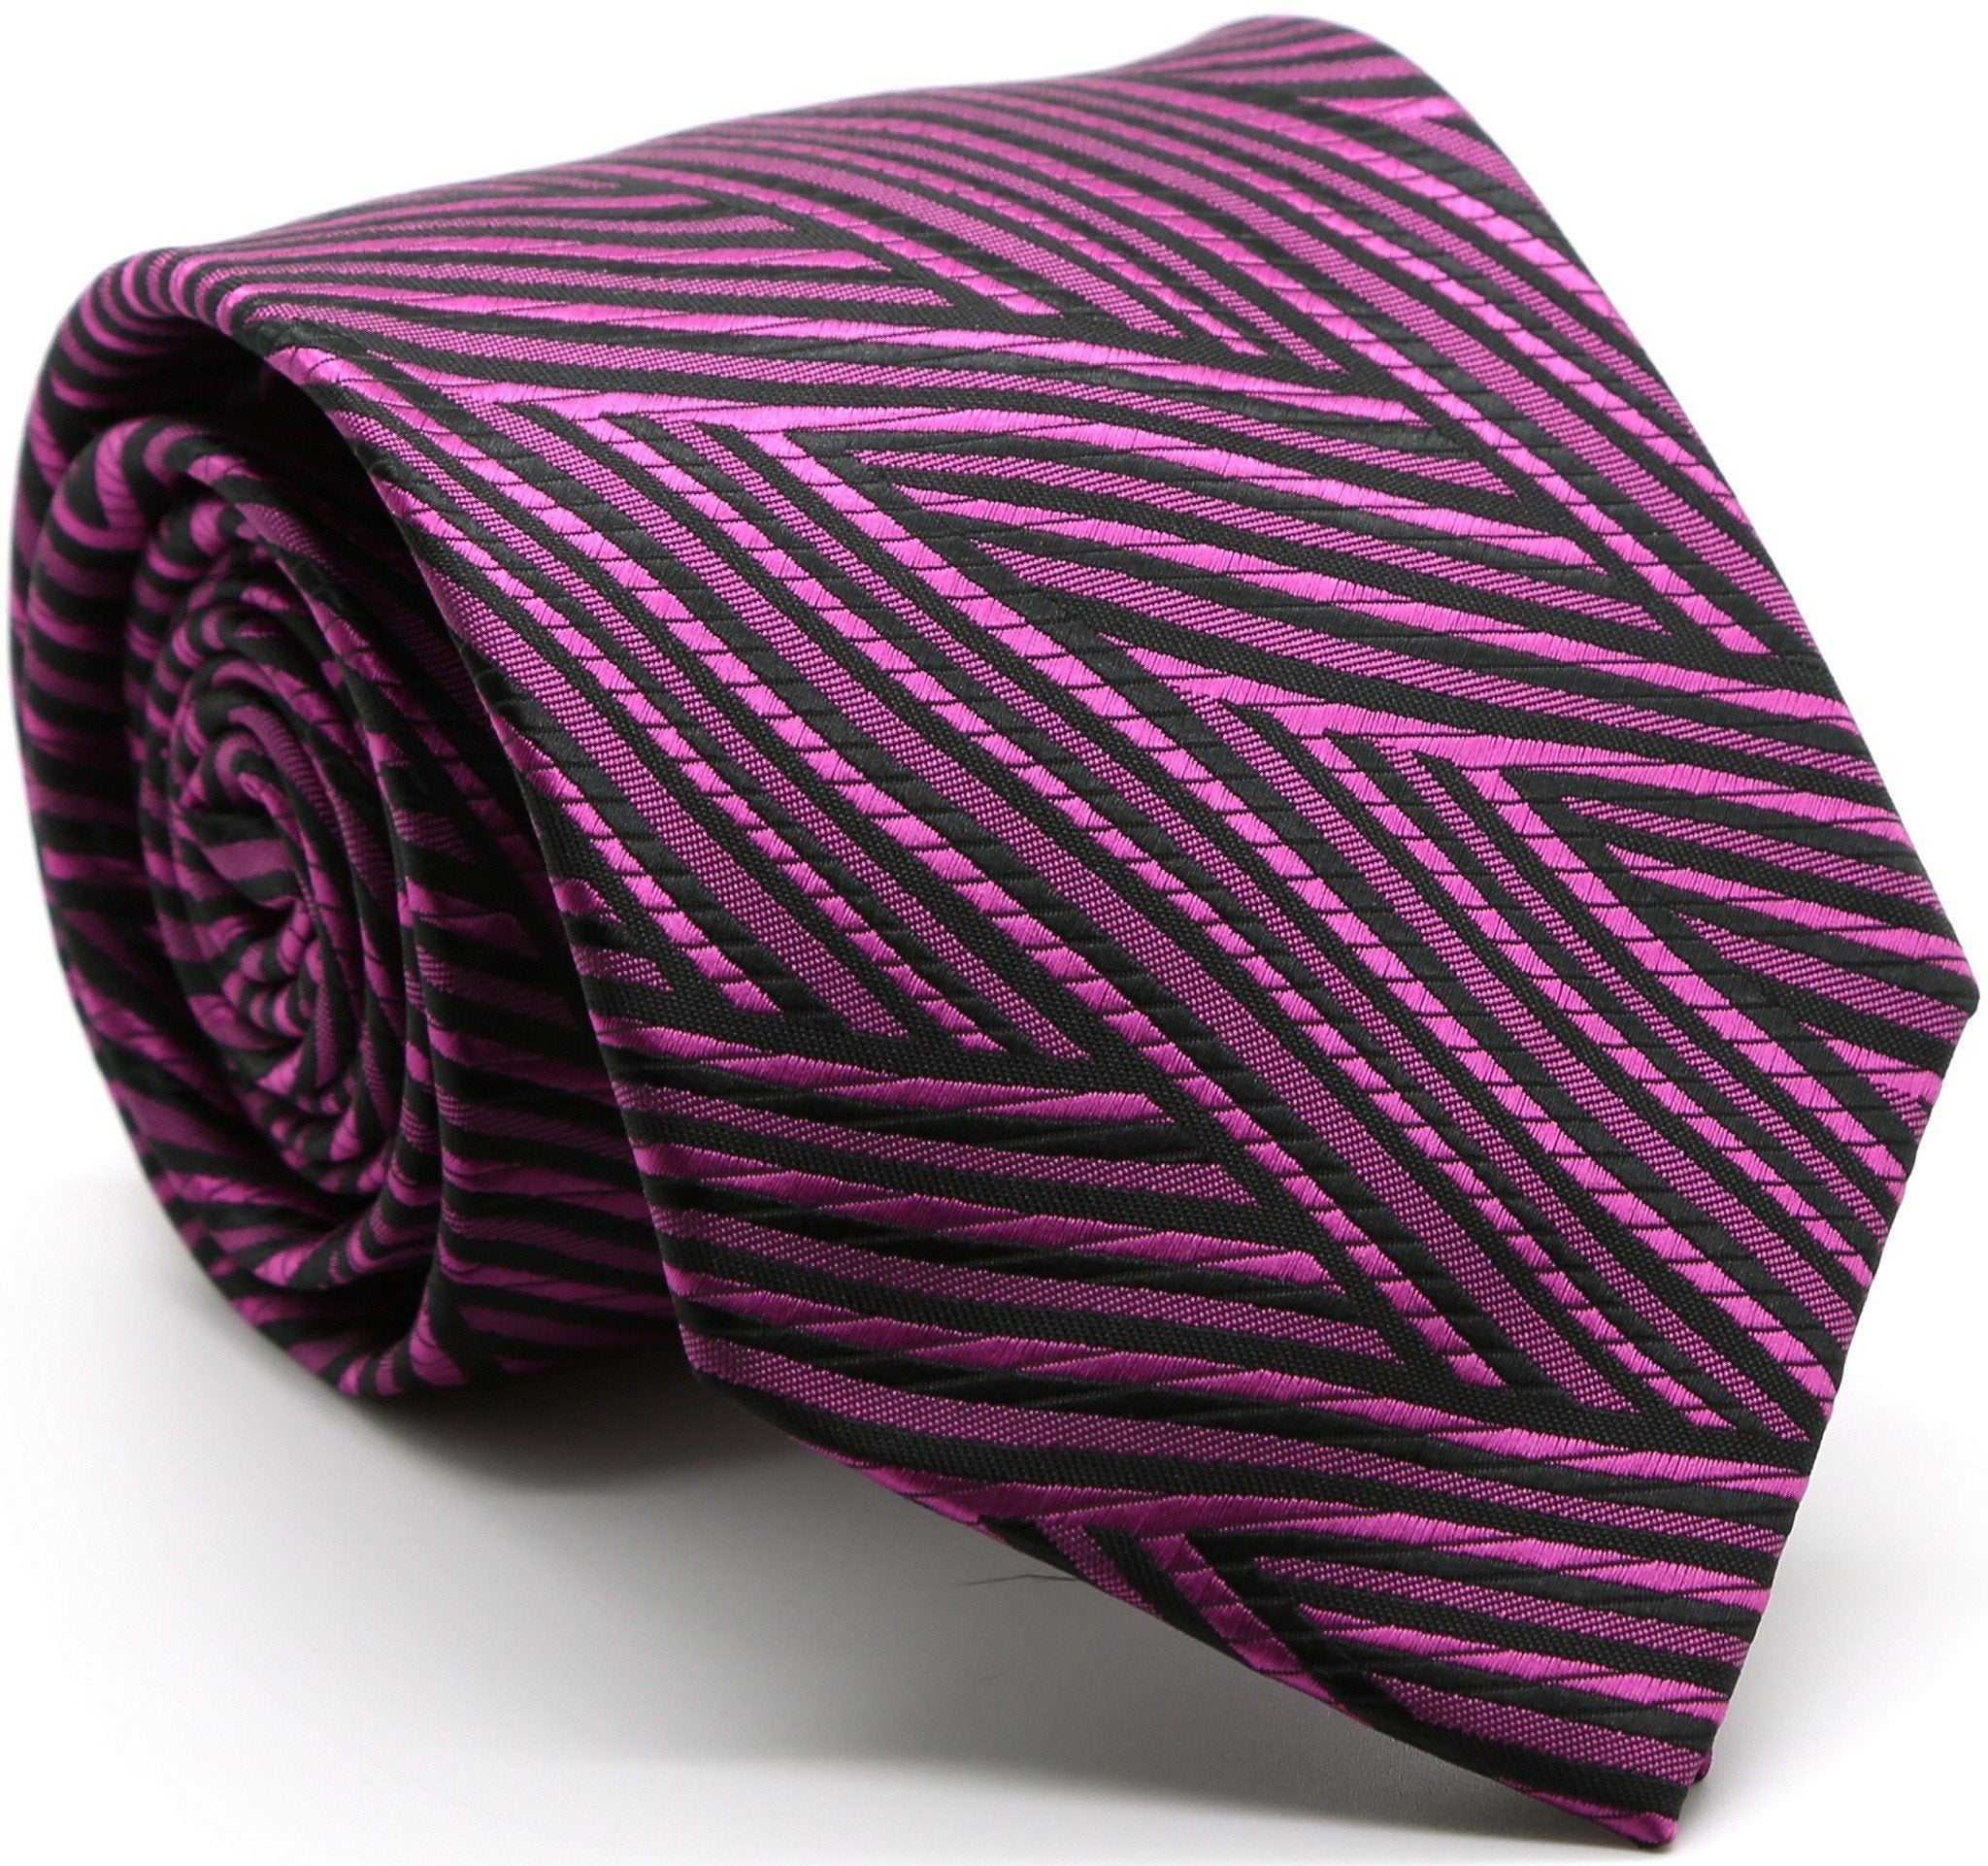 Premium Italian Striped Ties - Giorgio's Menswear